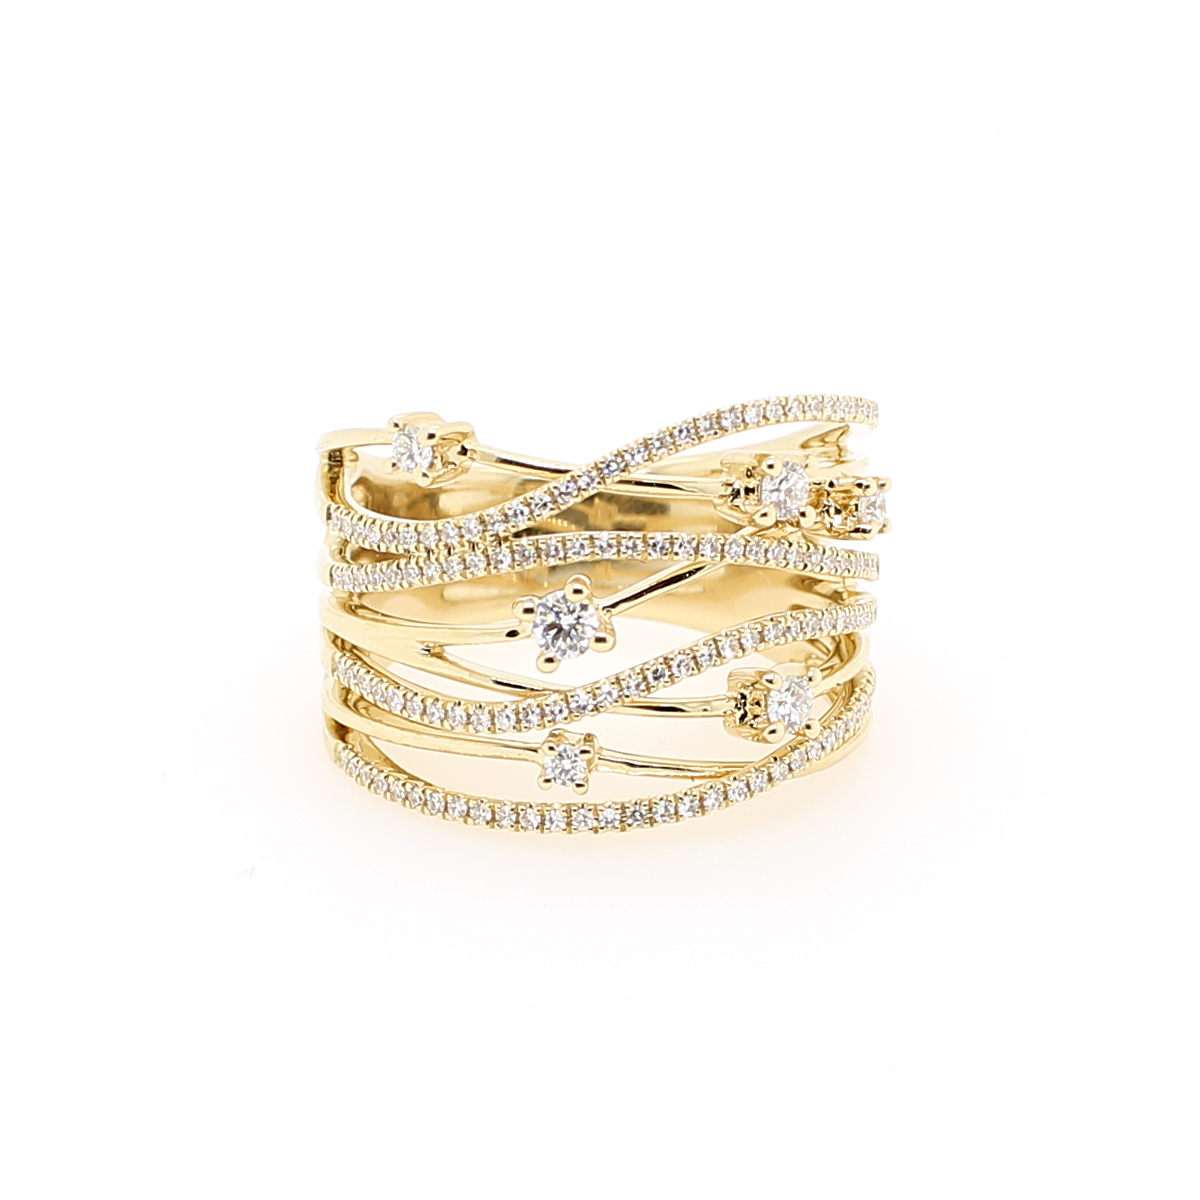 14 Karat Yellow Gold Diamond Bridge Ring